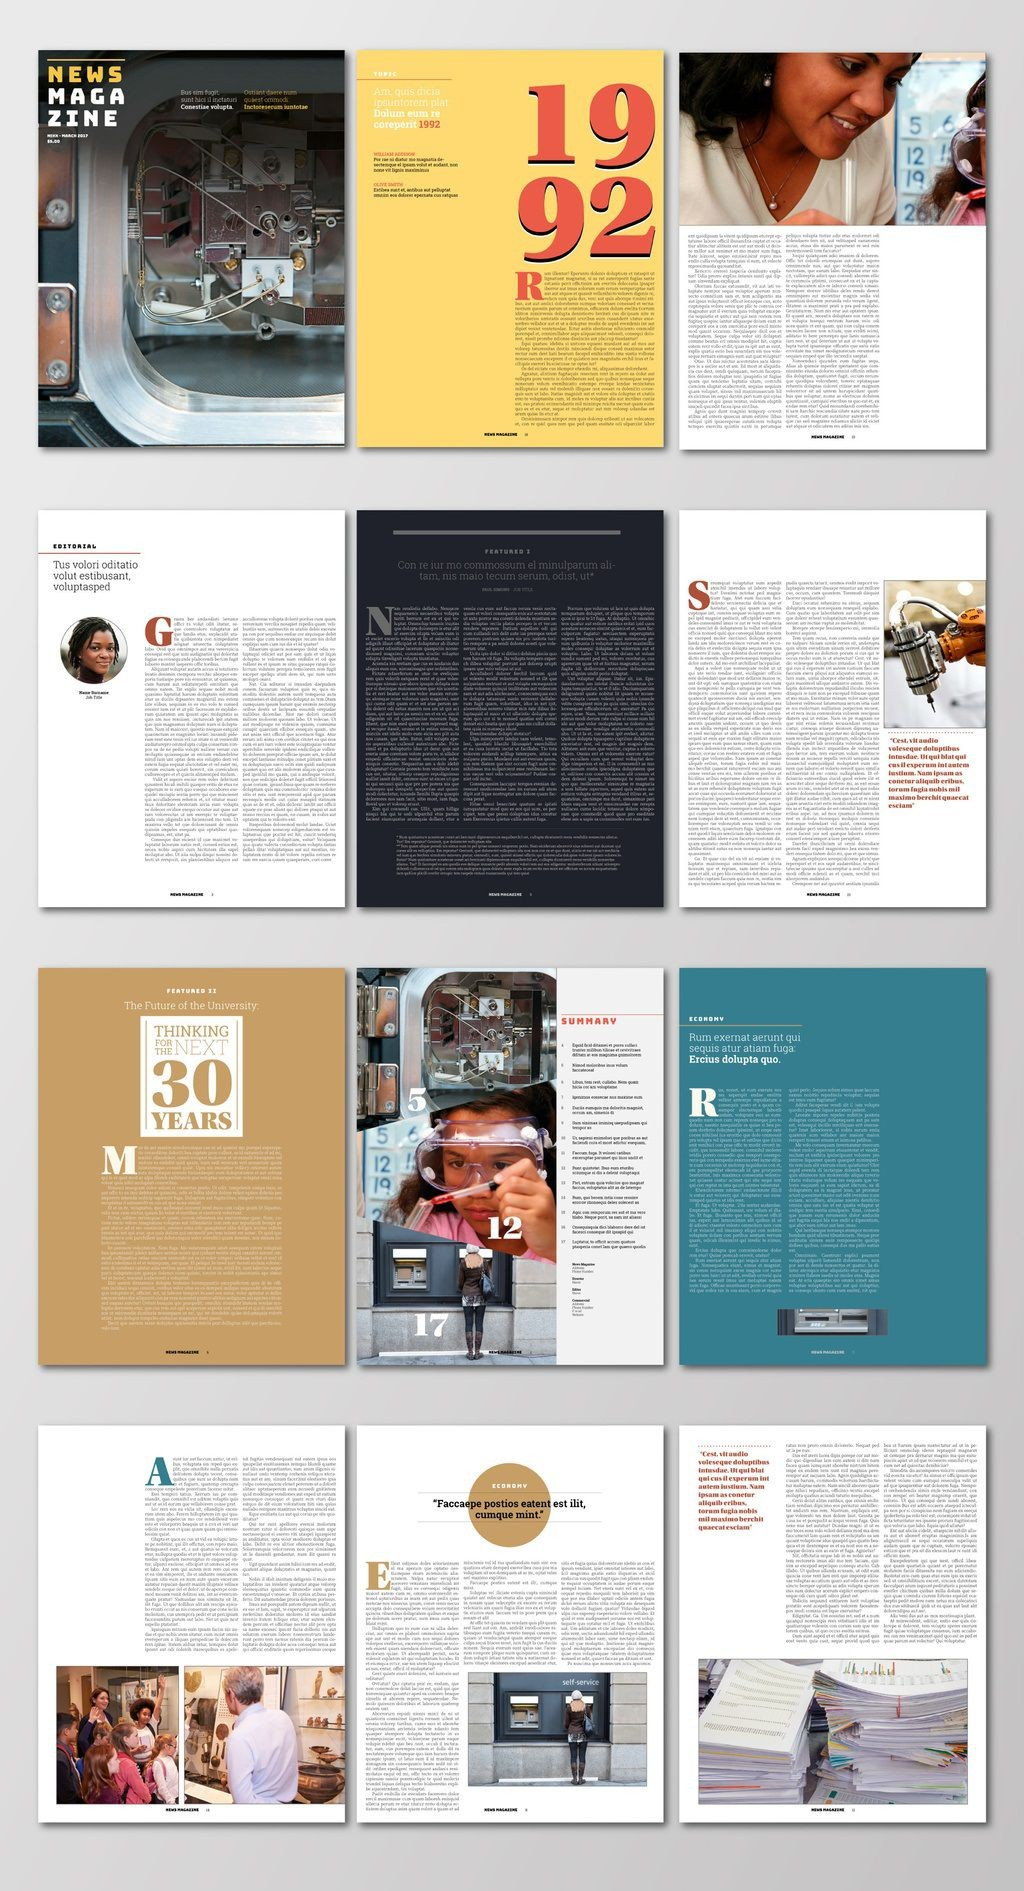 004 Excellent Indesign Magazine Template Free Concept  Cover Download Indd Cs5Large